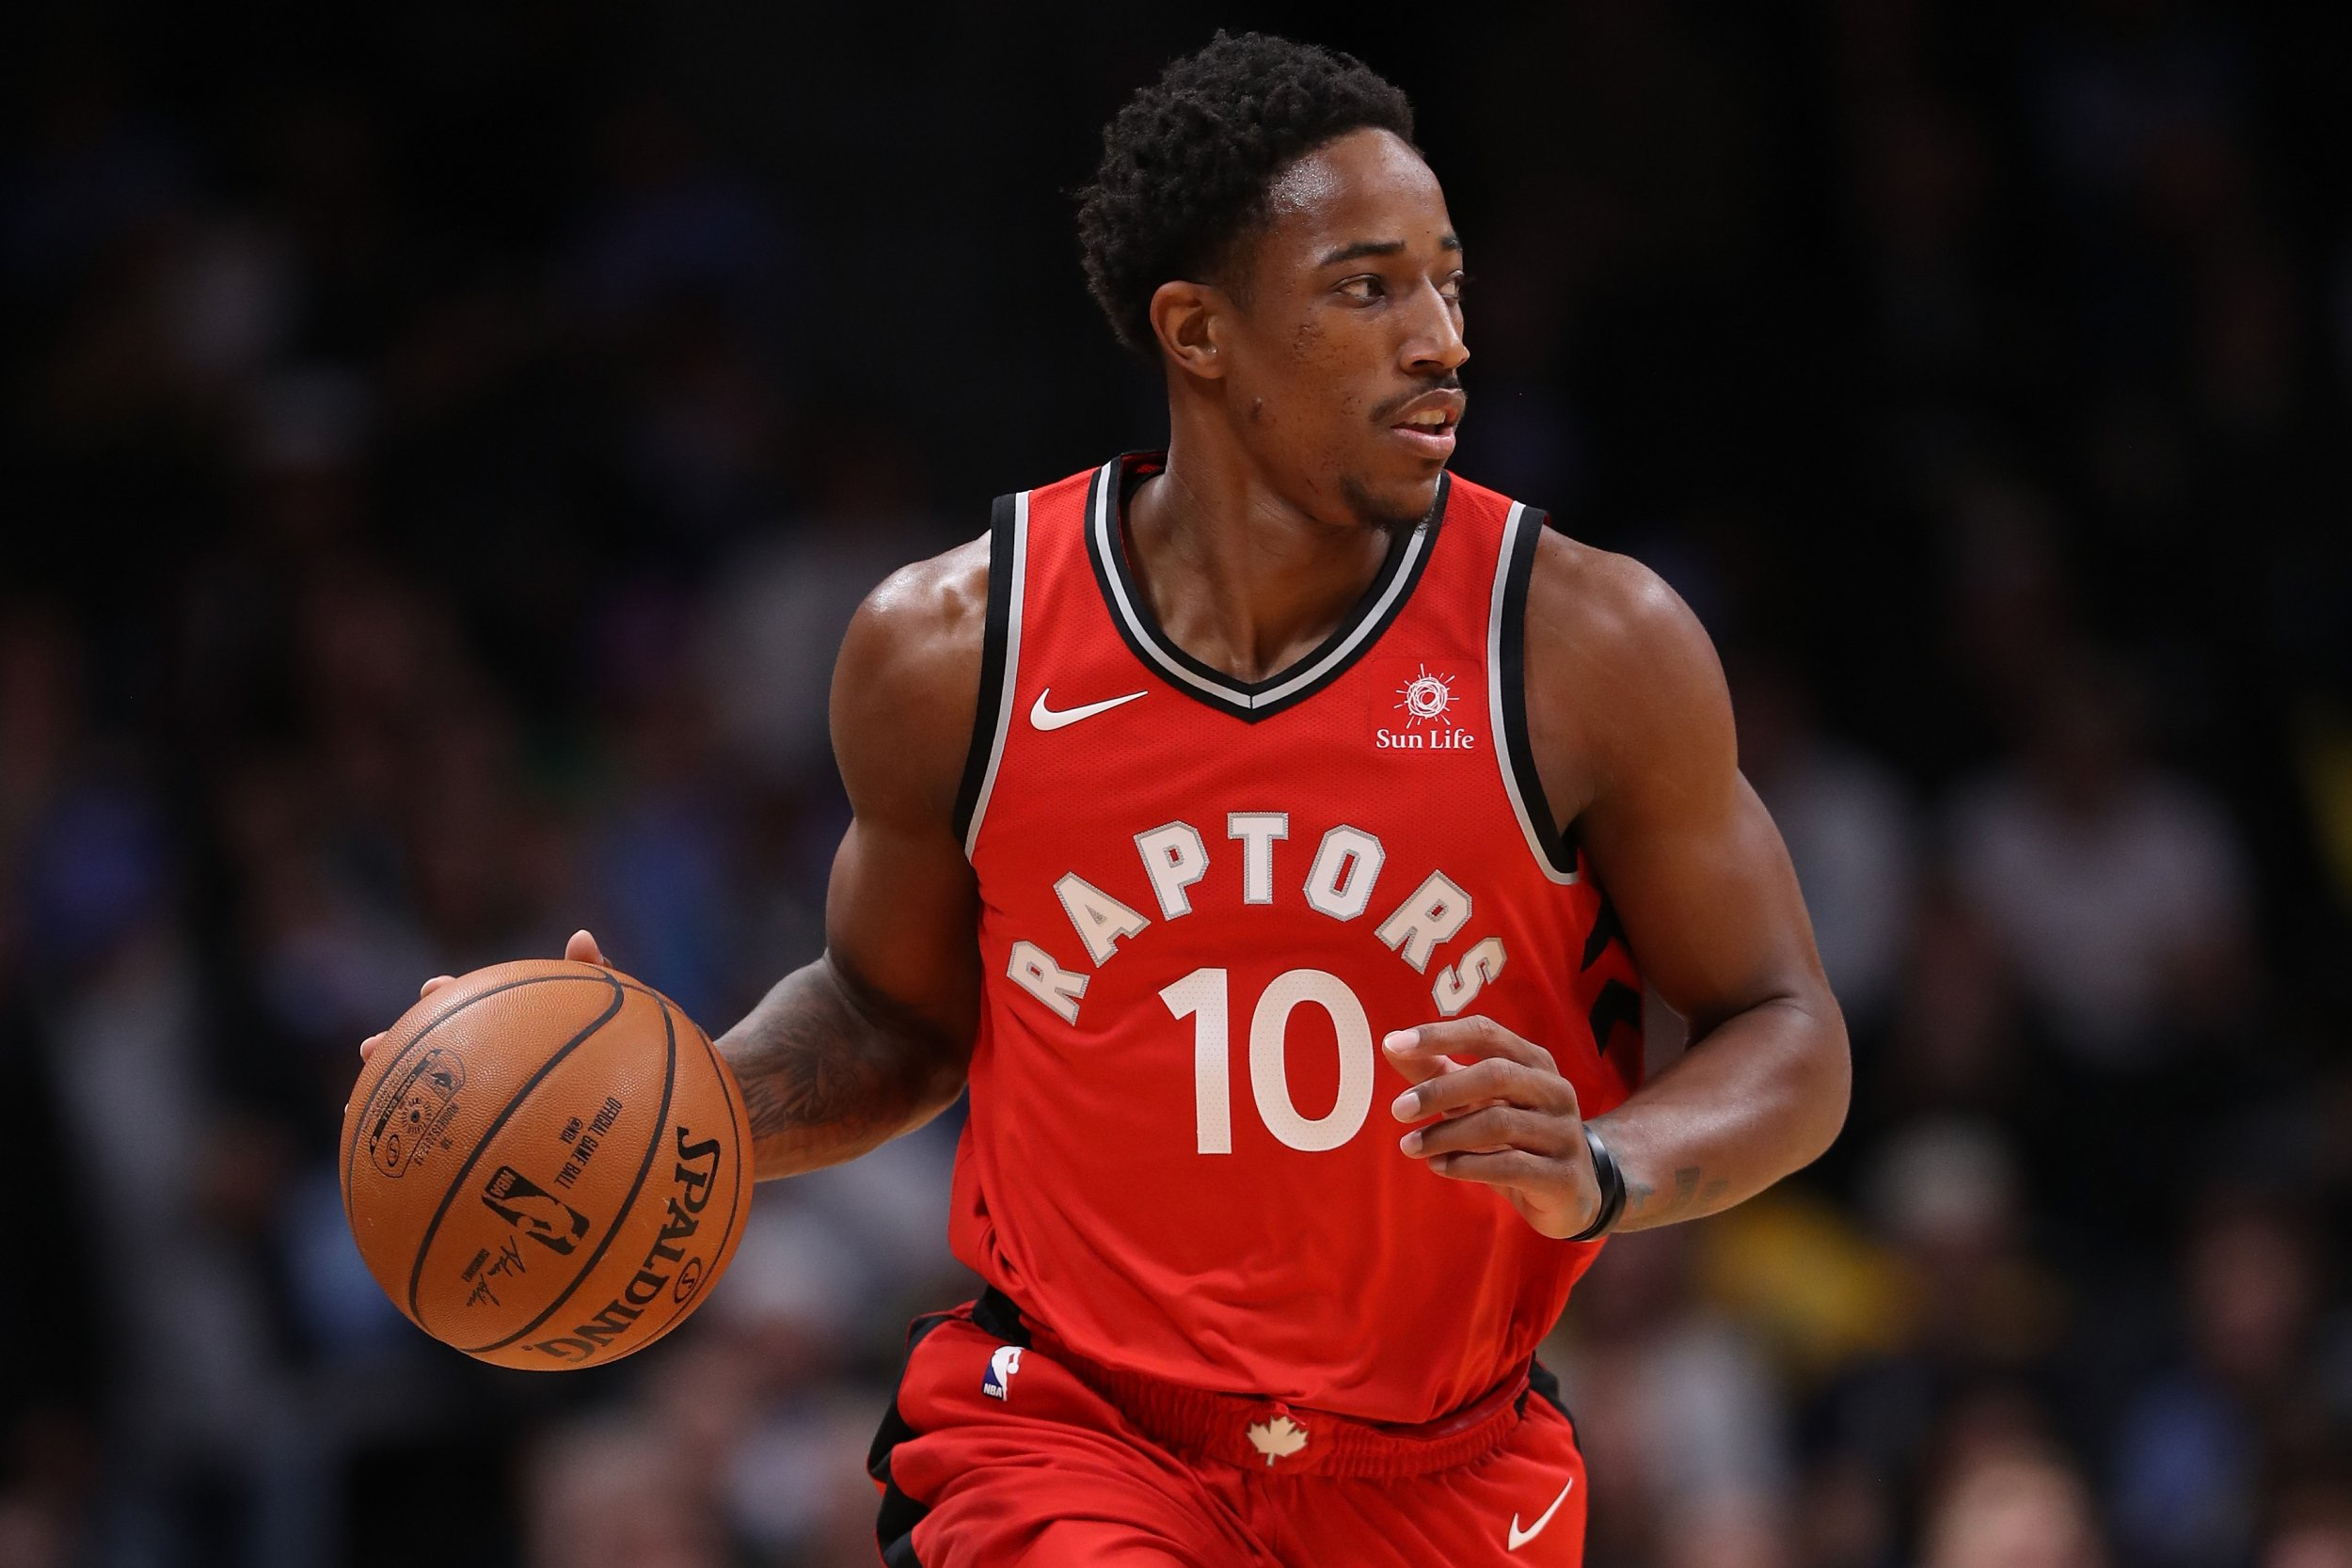 Toronto Raptors shooting guard DeMar DeRozan.